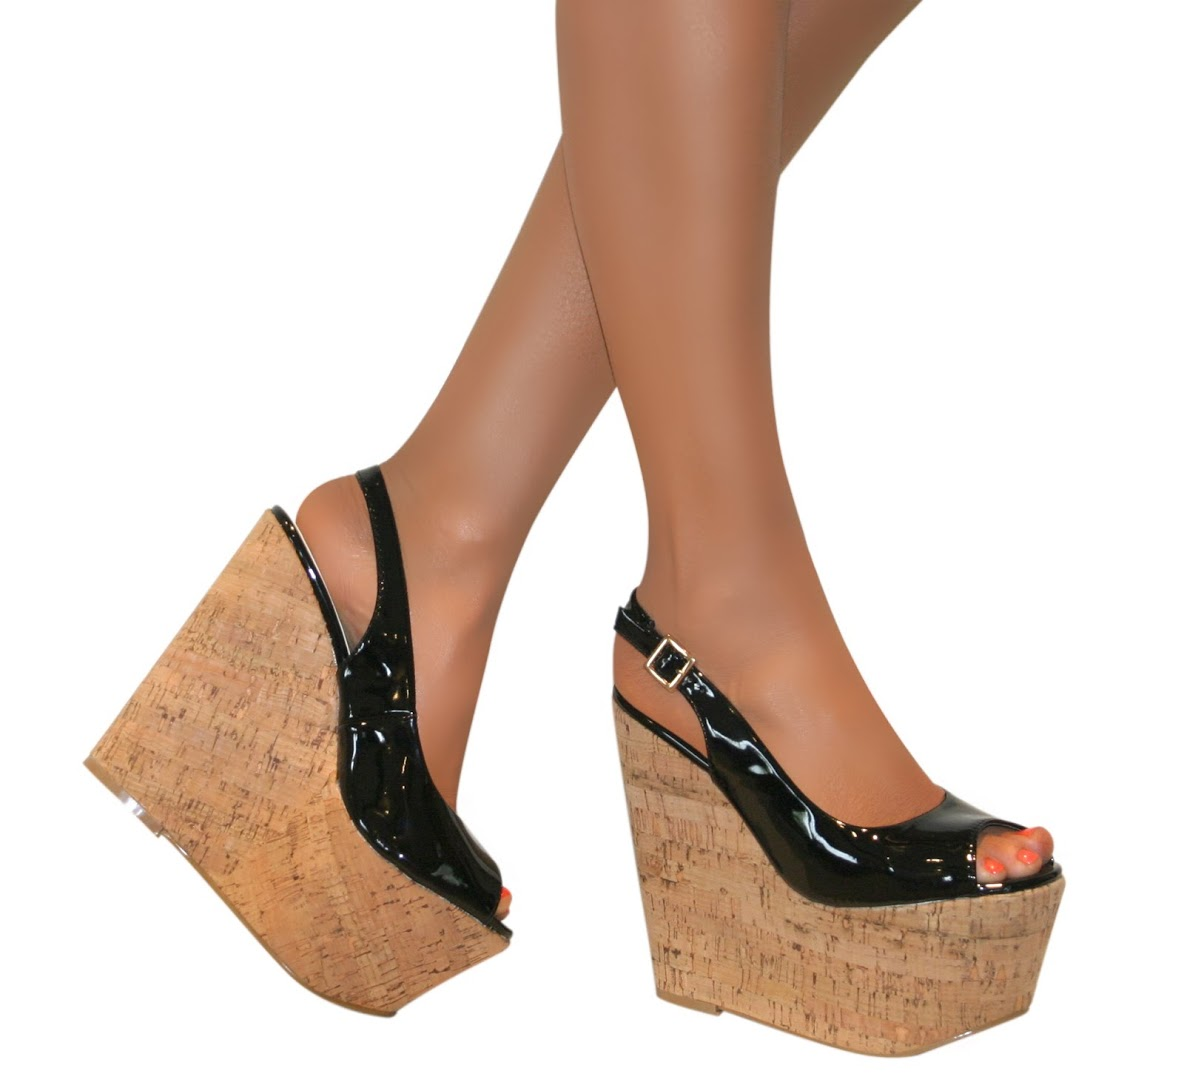 Discover the latest styles of women's dress wedges from your favorite brands at Famous Footwear! Find your fit today! Women. View All. New Arrivals. Athletic Shoes. Sandals. Casual Shoes. Dress Shoes. Women's Wedges Dress Shoes. Discover the latest styles of women's dress wedges and dress shoes at Famous Footwear! New Search. Women's Search.